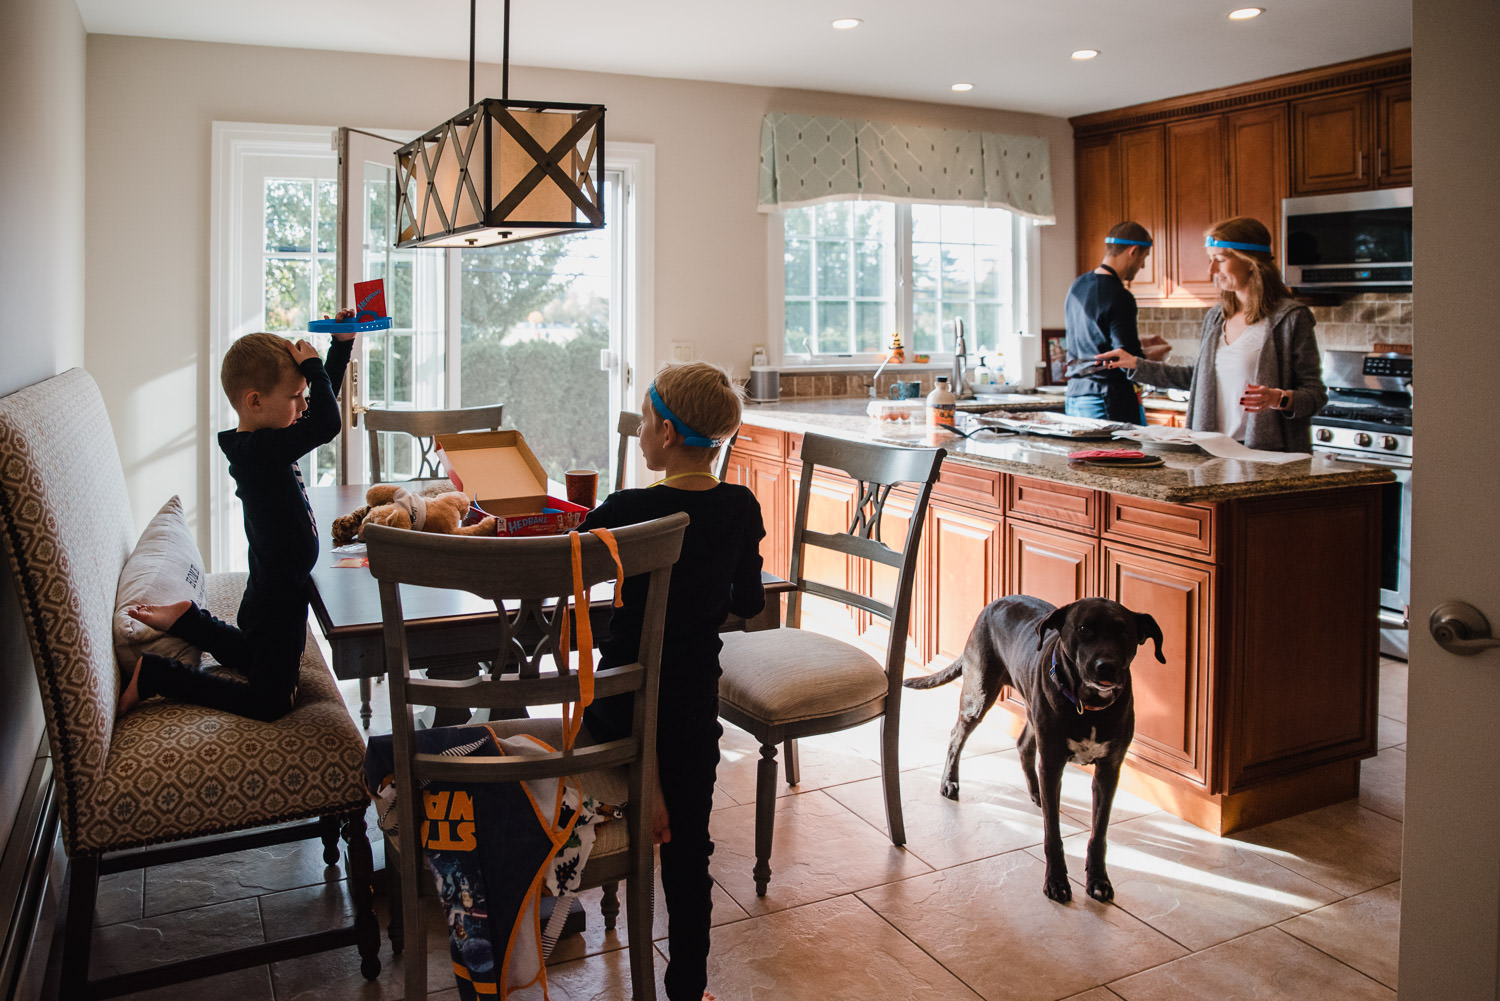 A family congregates in the kitchen to make breakfast.